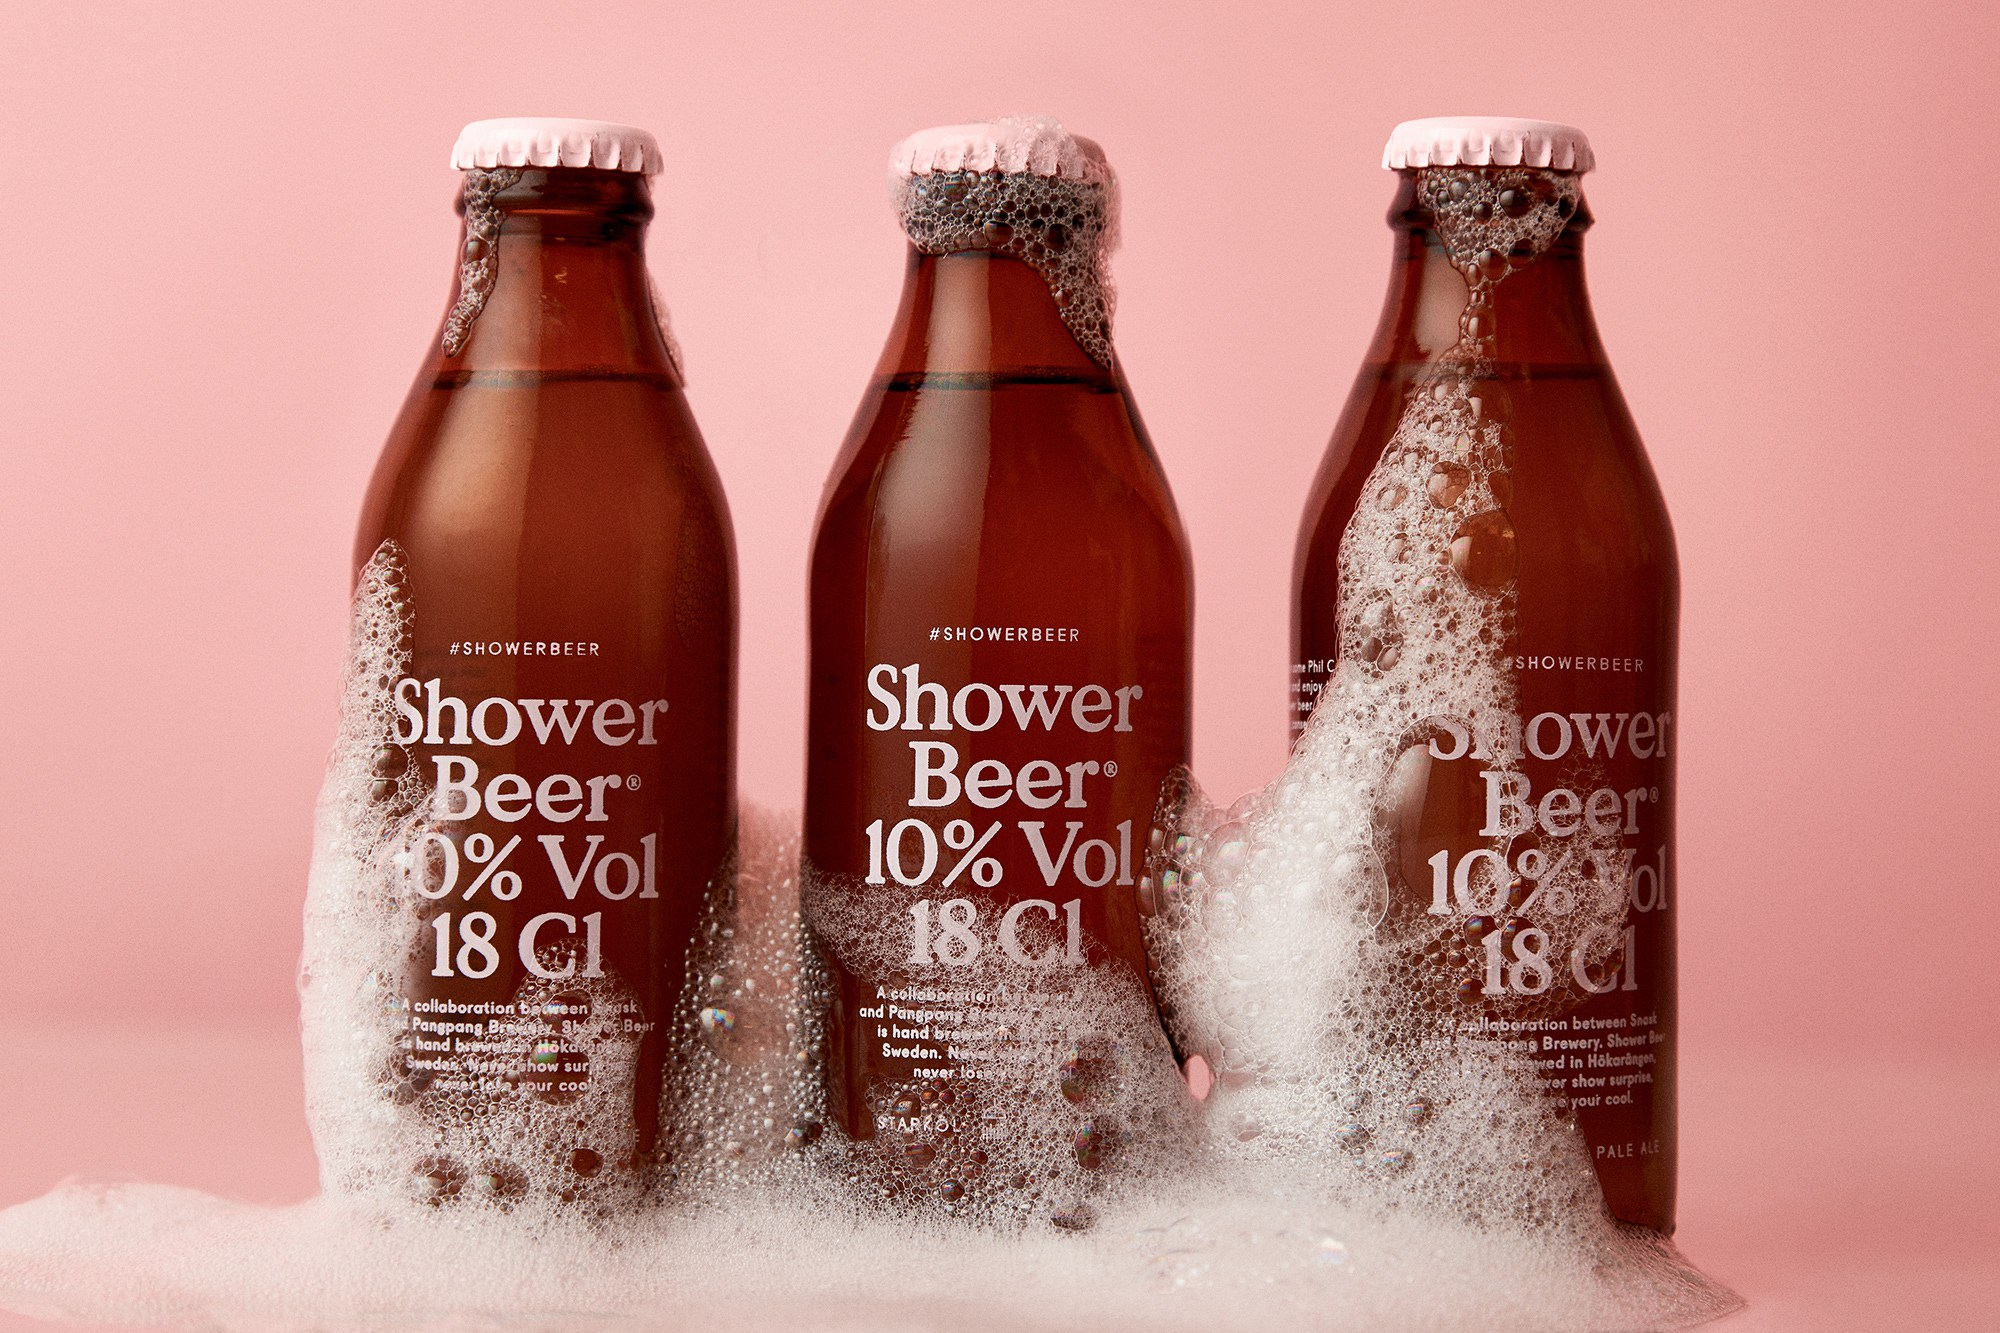 shower-beer-1-image